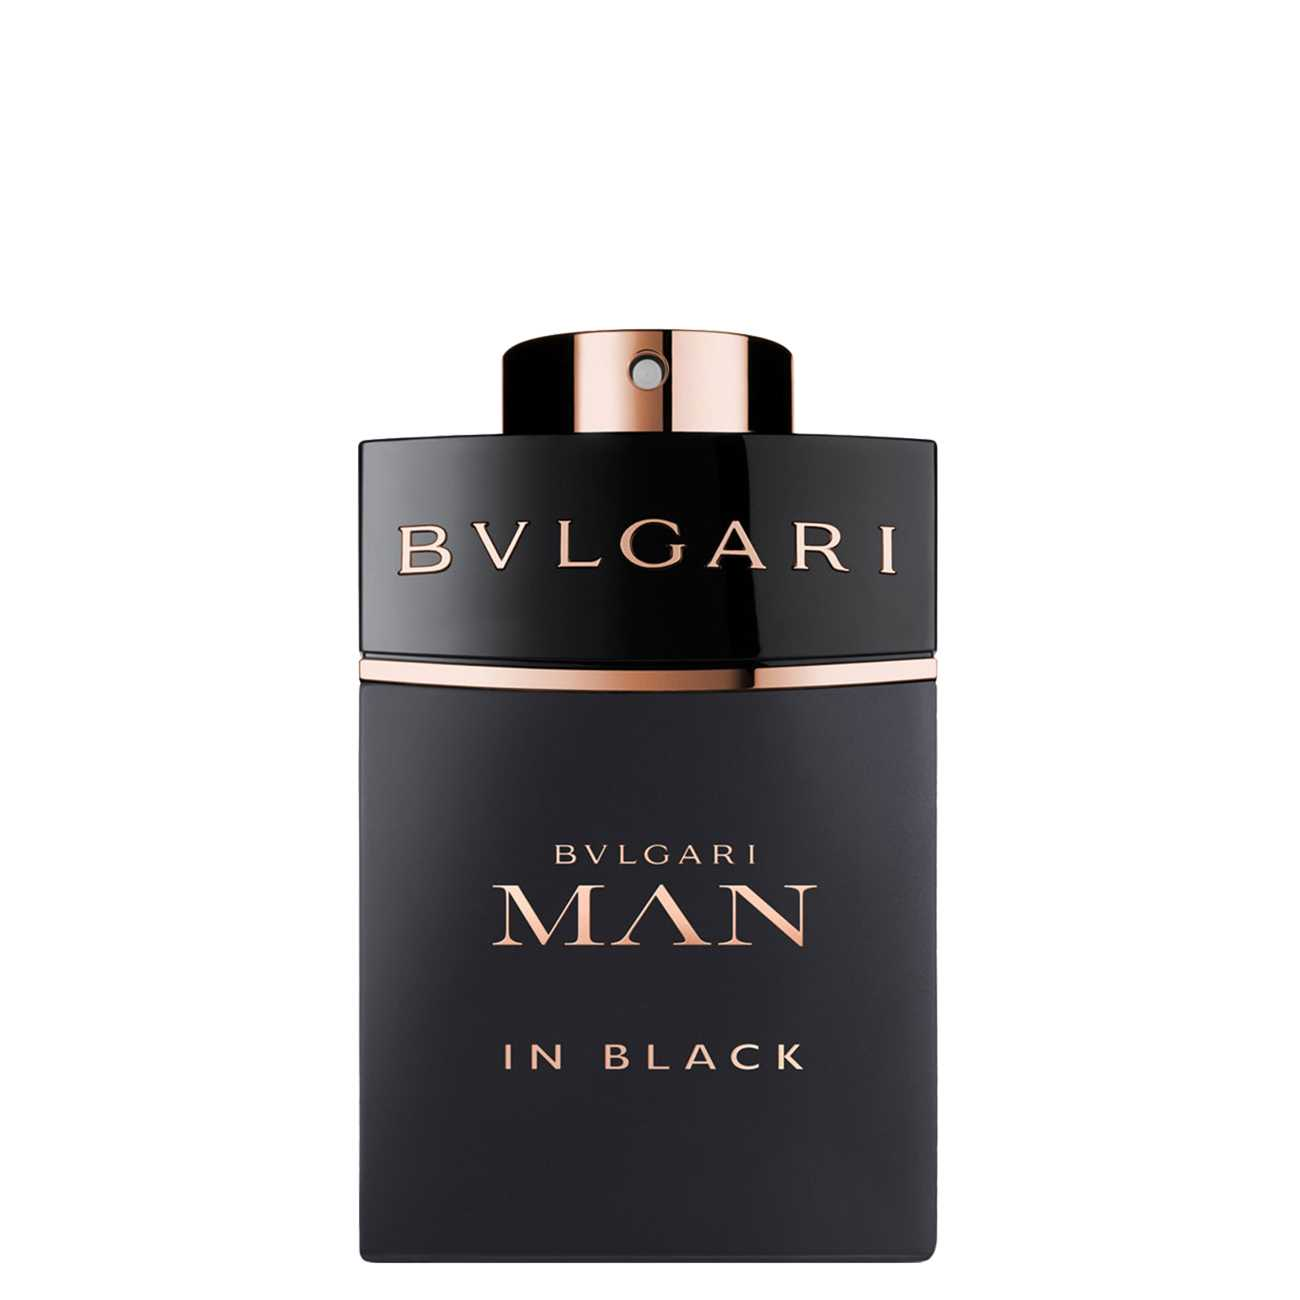 Man In Black 60ml Bvlgari imagine 2021 bestvalue.eu